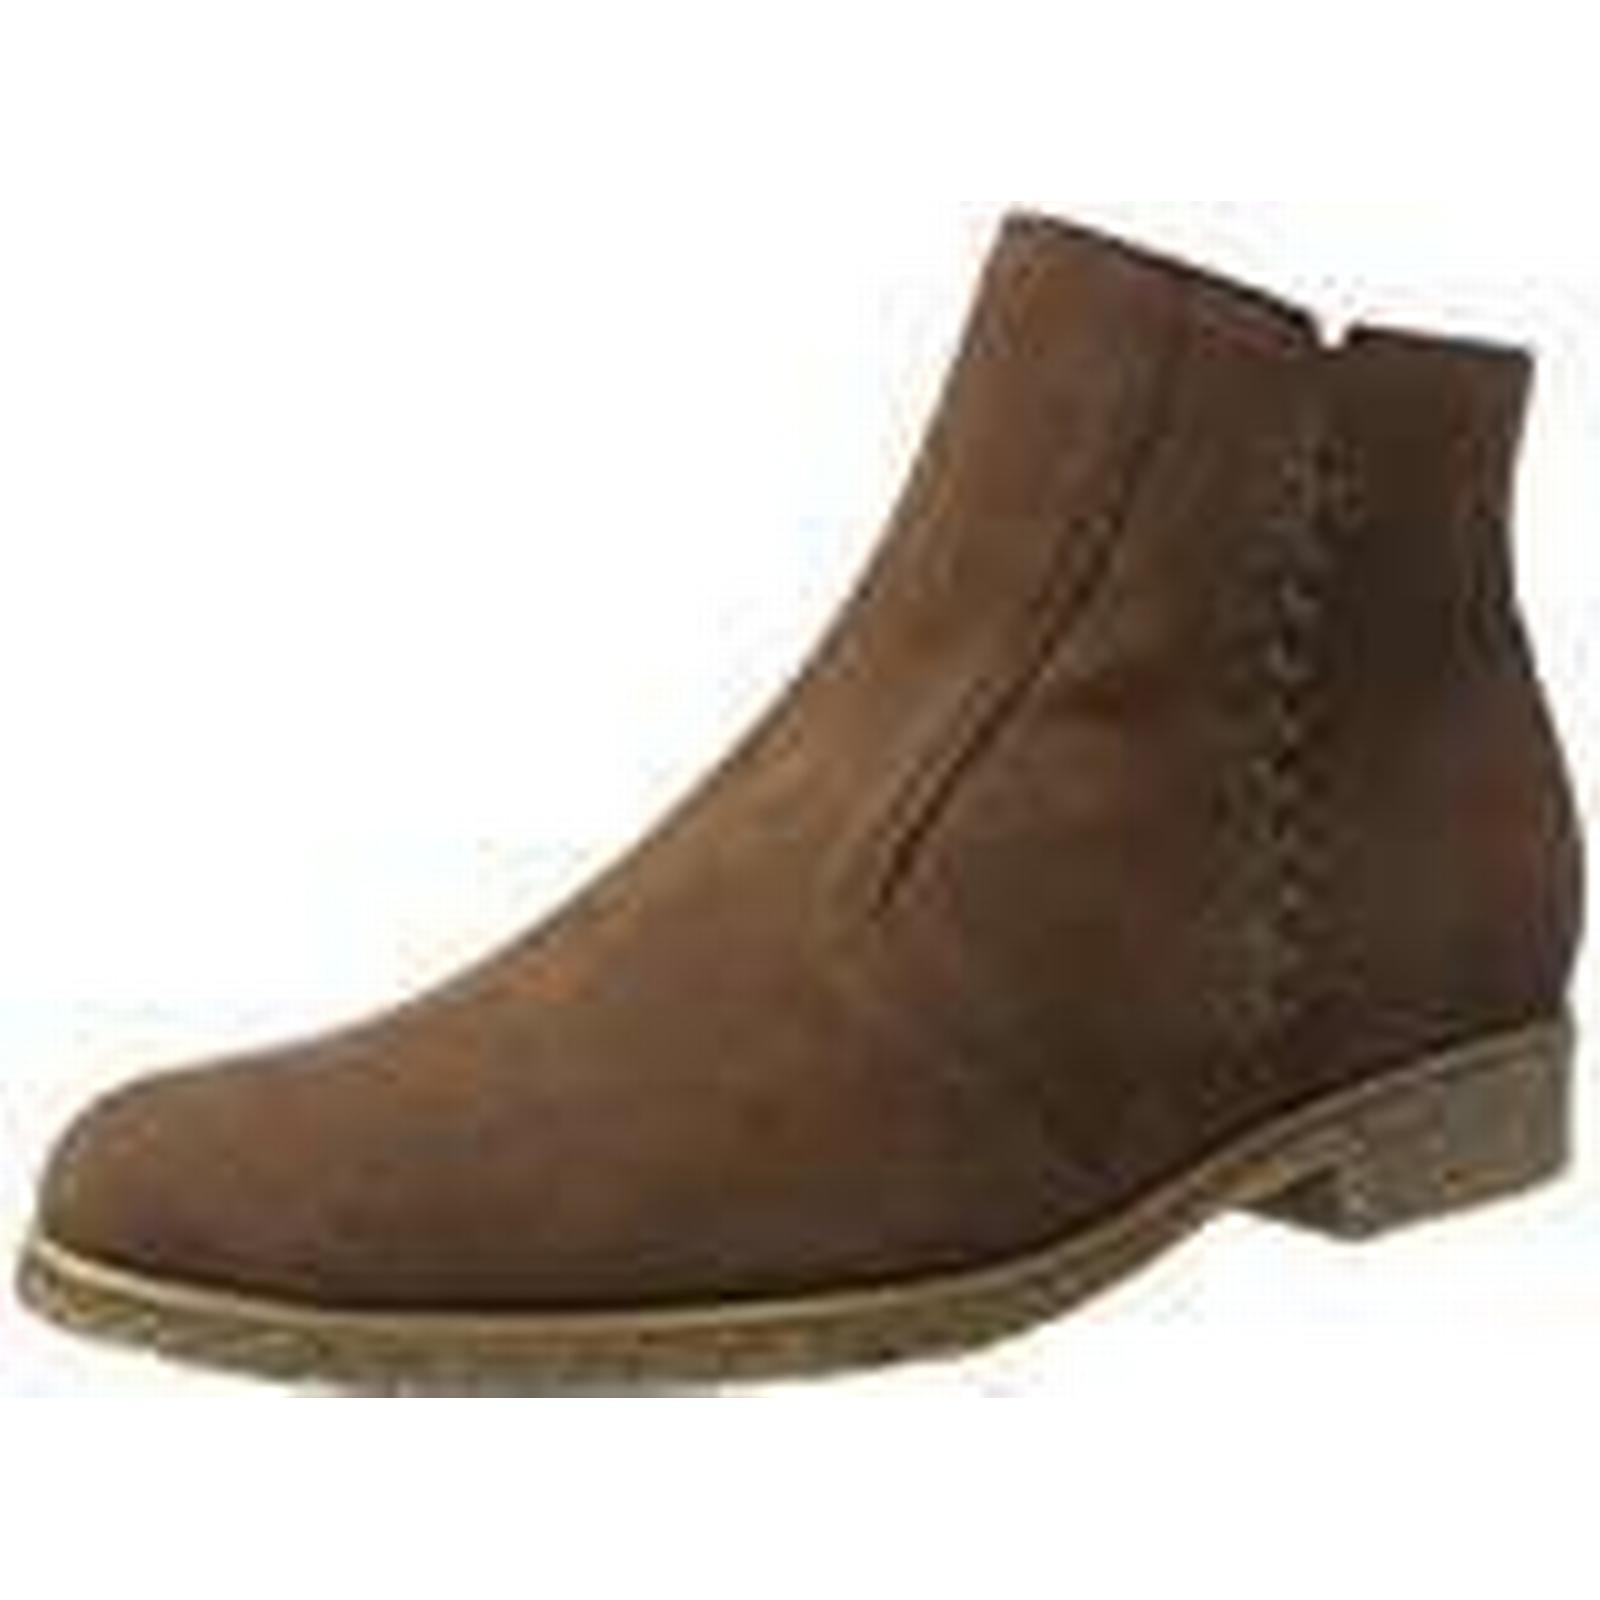 Gabor Women's Fashion 18), Boots, Brown (18 Nougat/Bronce 18), Fashion 7.5 UK 603383